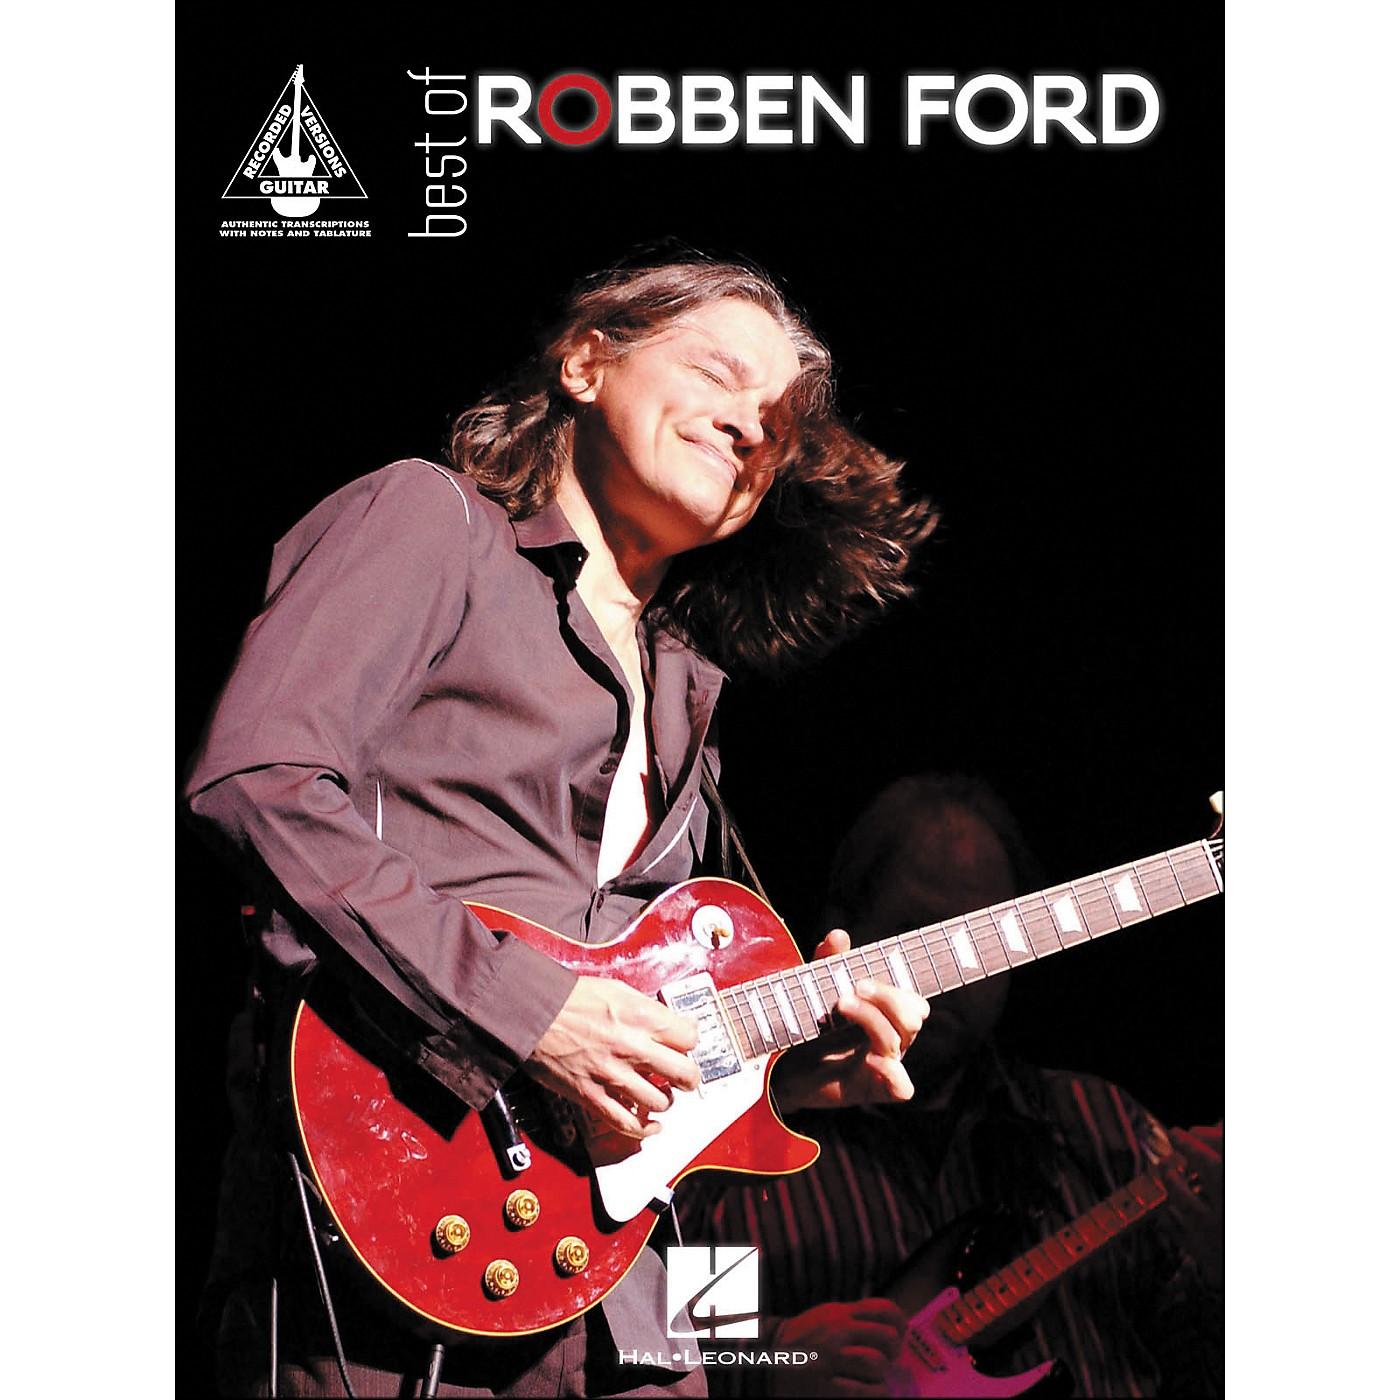 Hal Leonard Best Of Robben ford Tab Book thumbnail